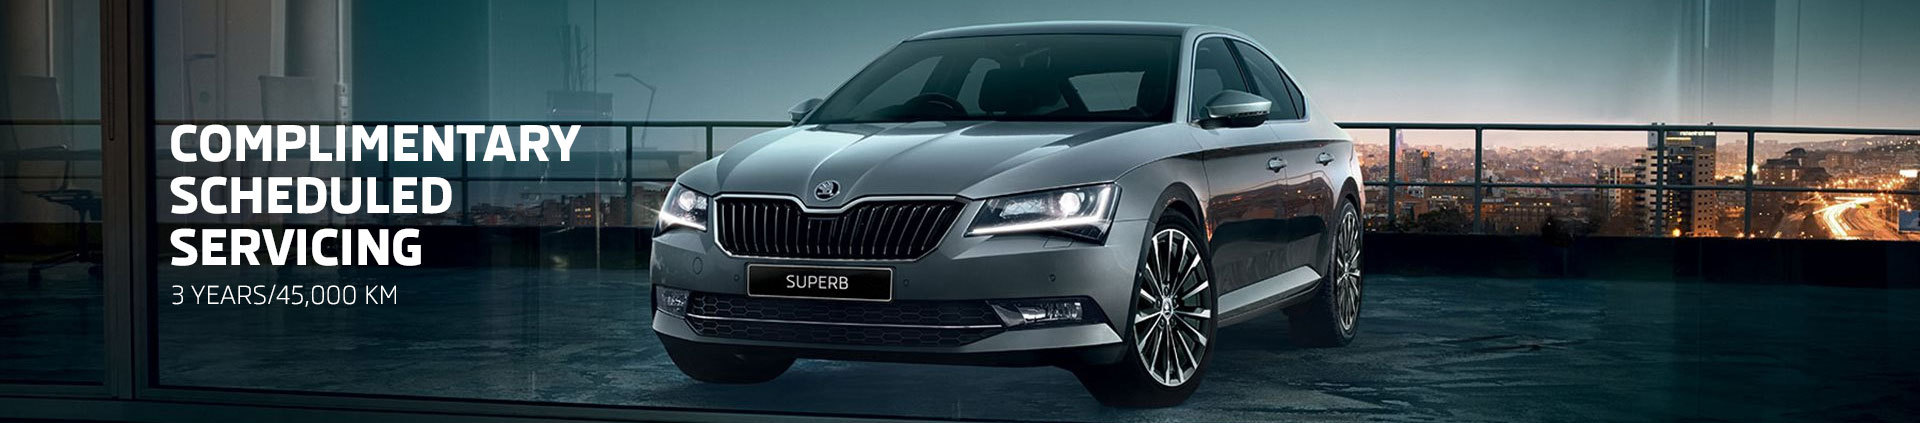 Skoda - National Offer - Complimentary Scheduled Servicing; 3 Years/45,000km